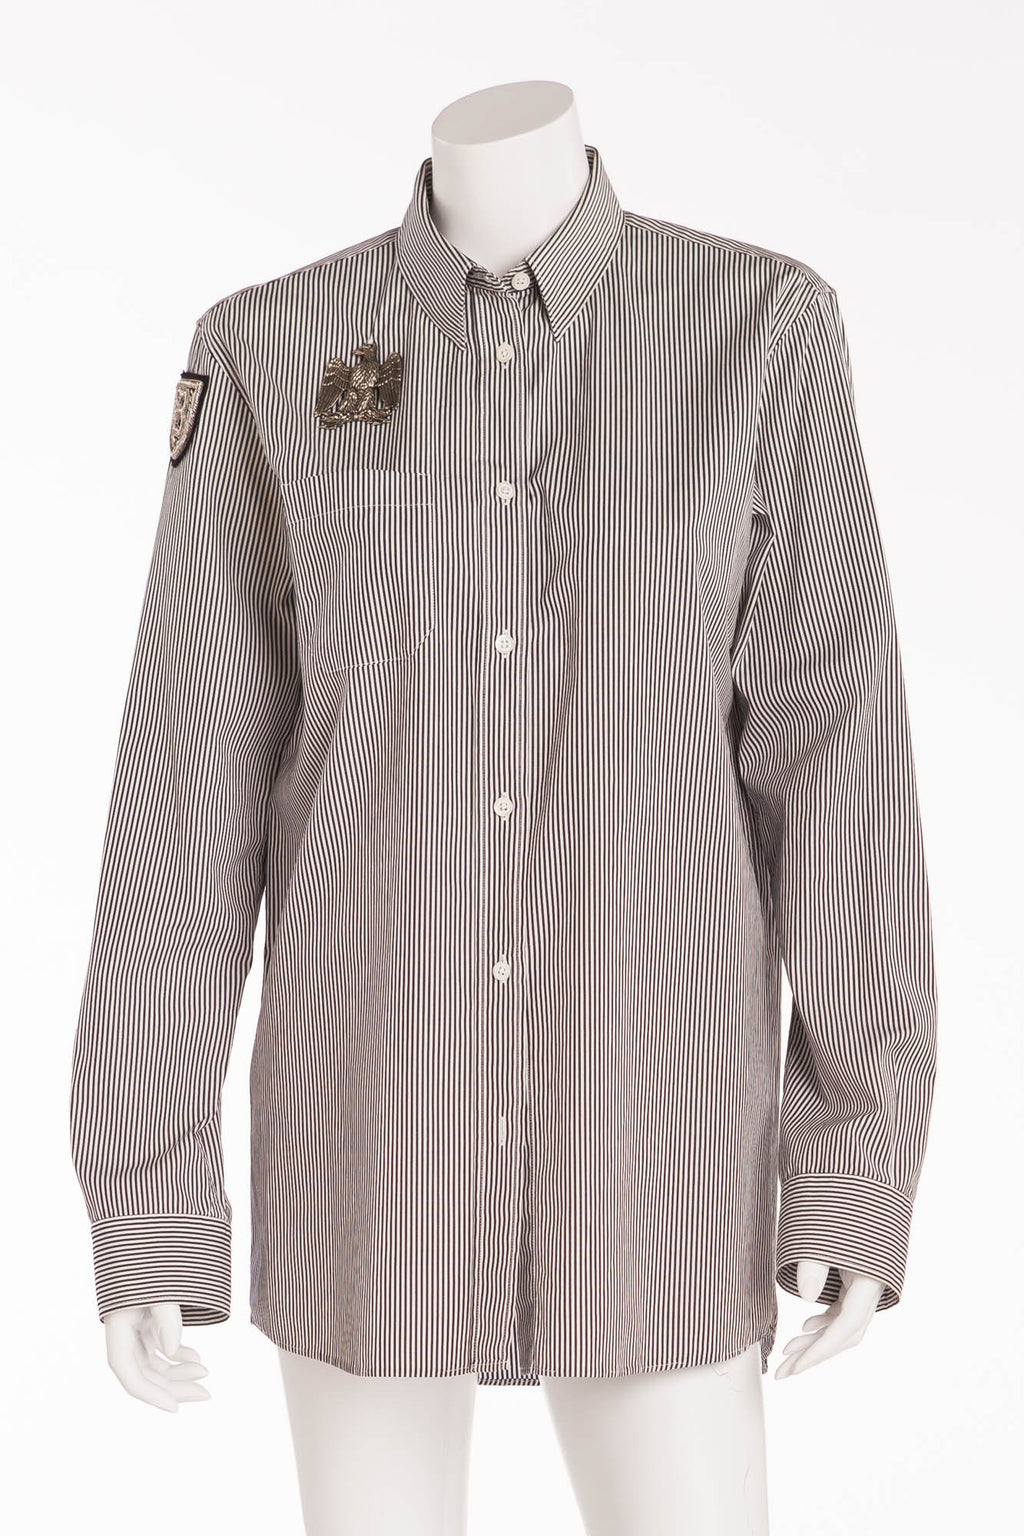 Balmain - Gray Stripe Blouse with eagle - FR 40